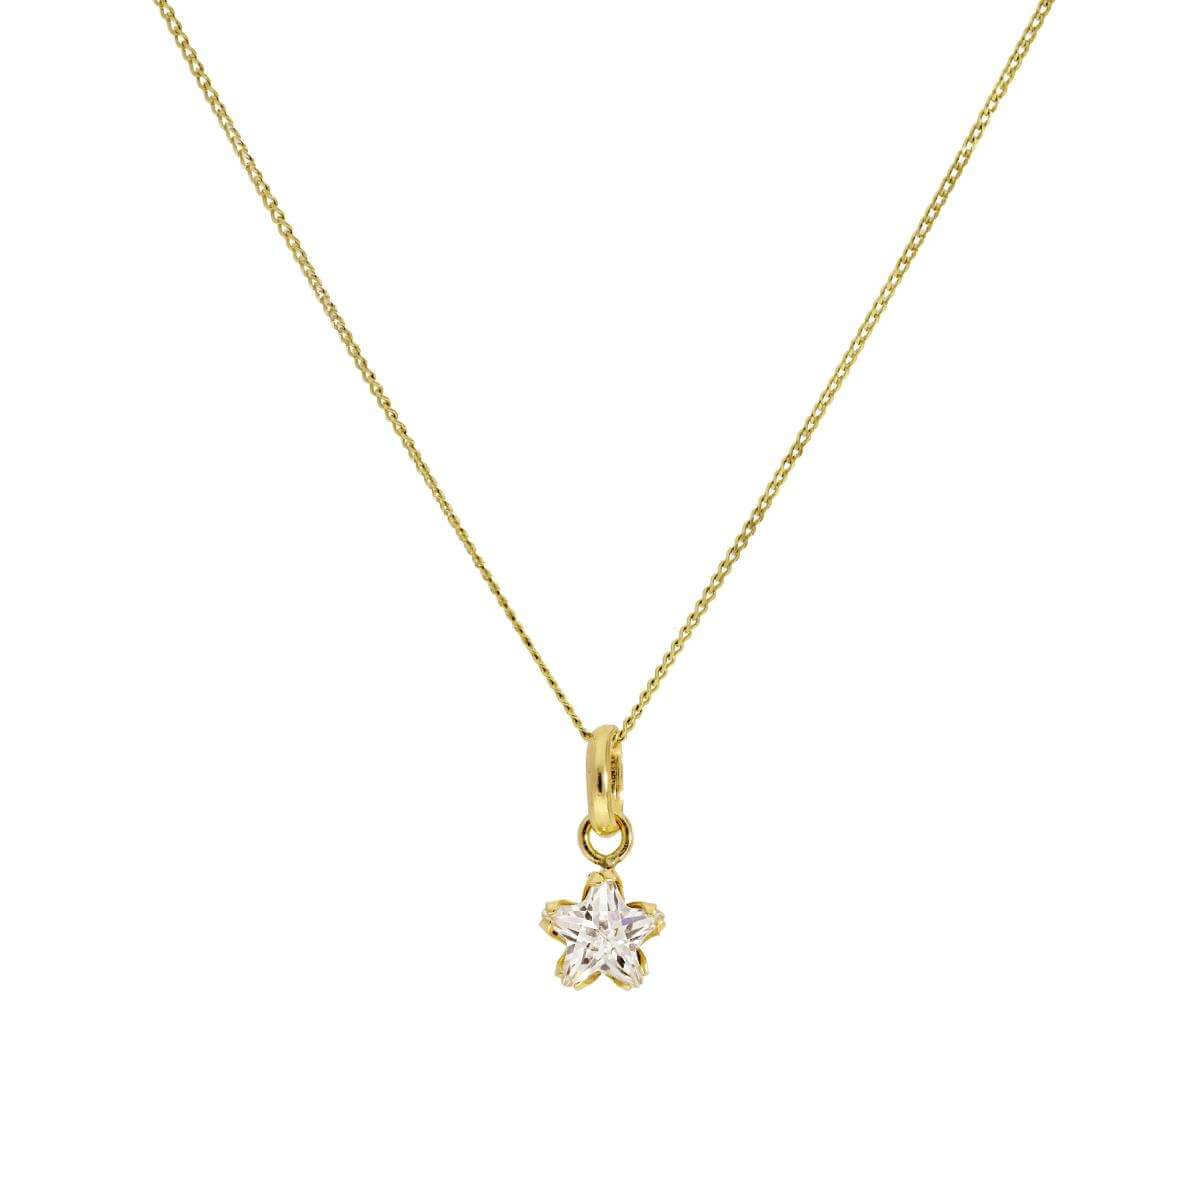 Small 9ct Gold & CZ Crystal Star Pendant Necklace 16 - 20 Inches